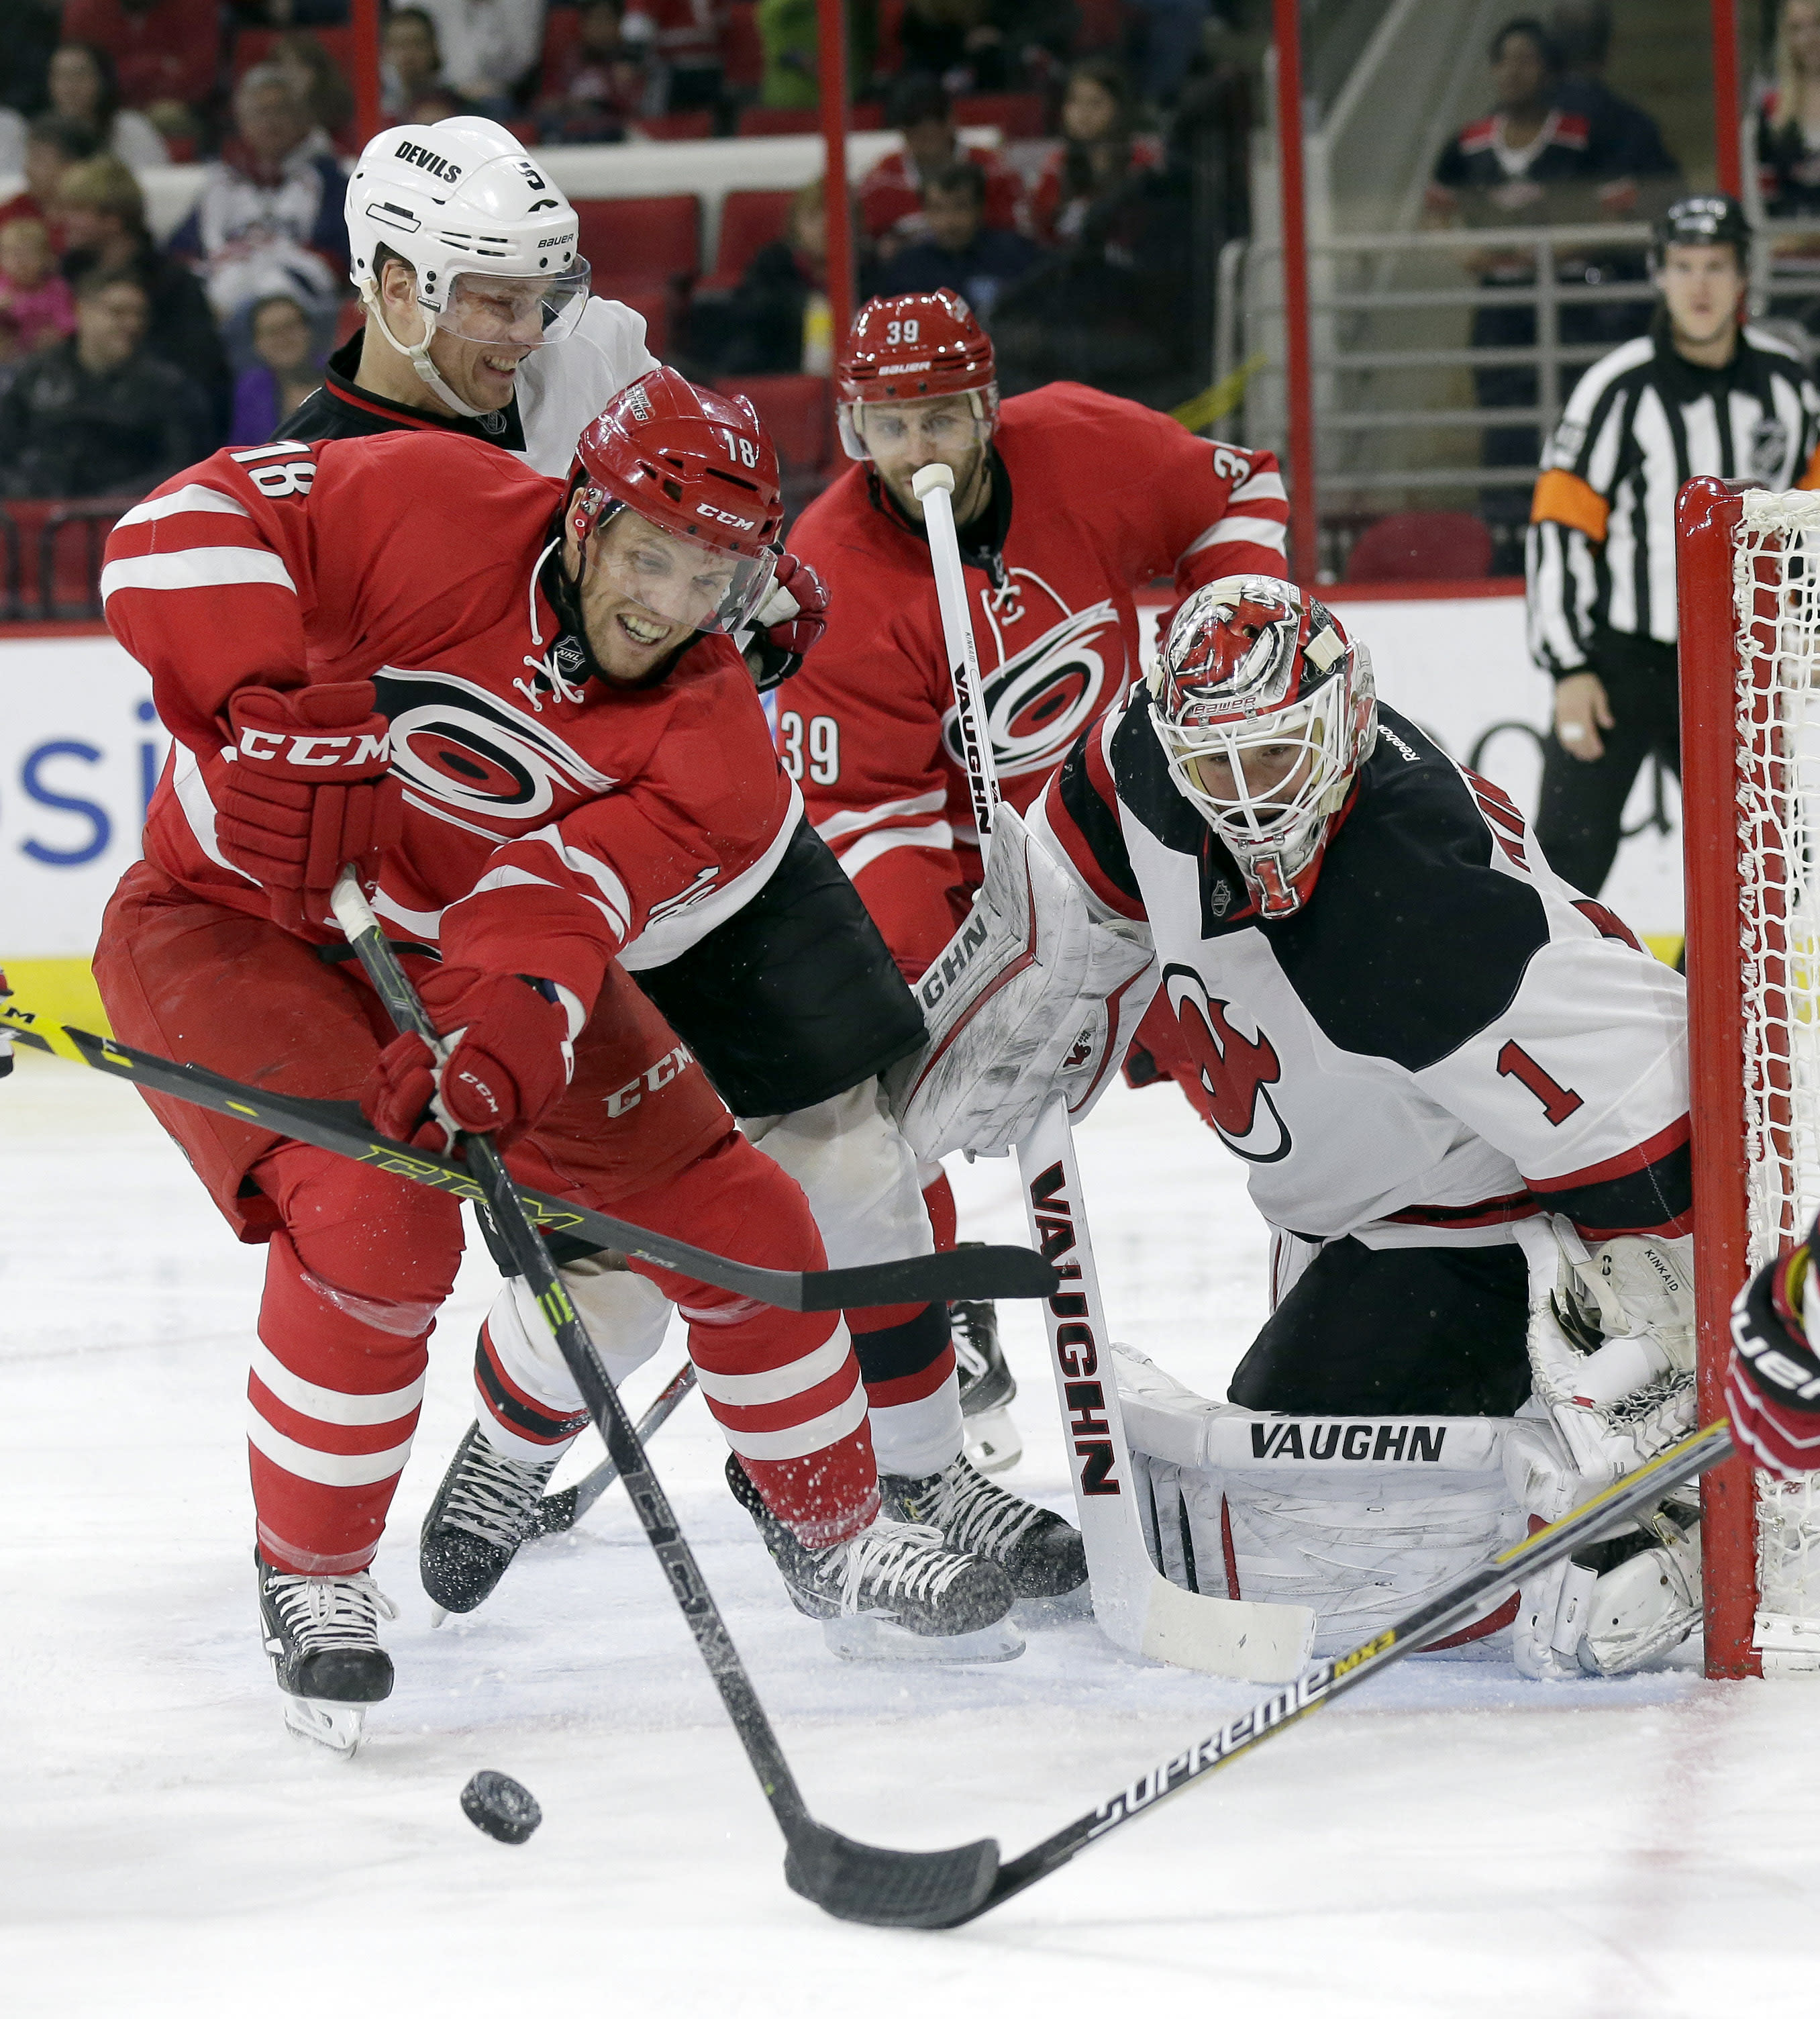 Staal, Faulk score in 3rd, lead Hurricanes past Devils 3-1